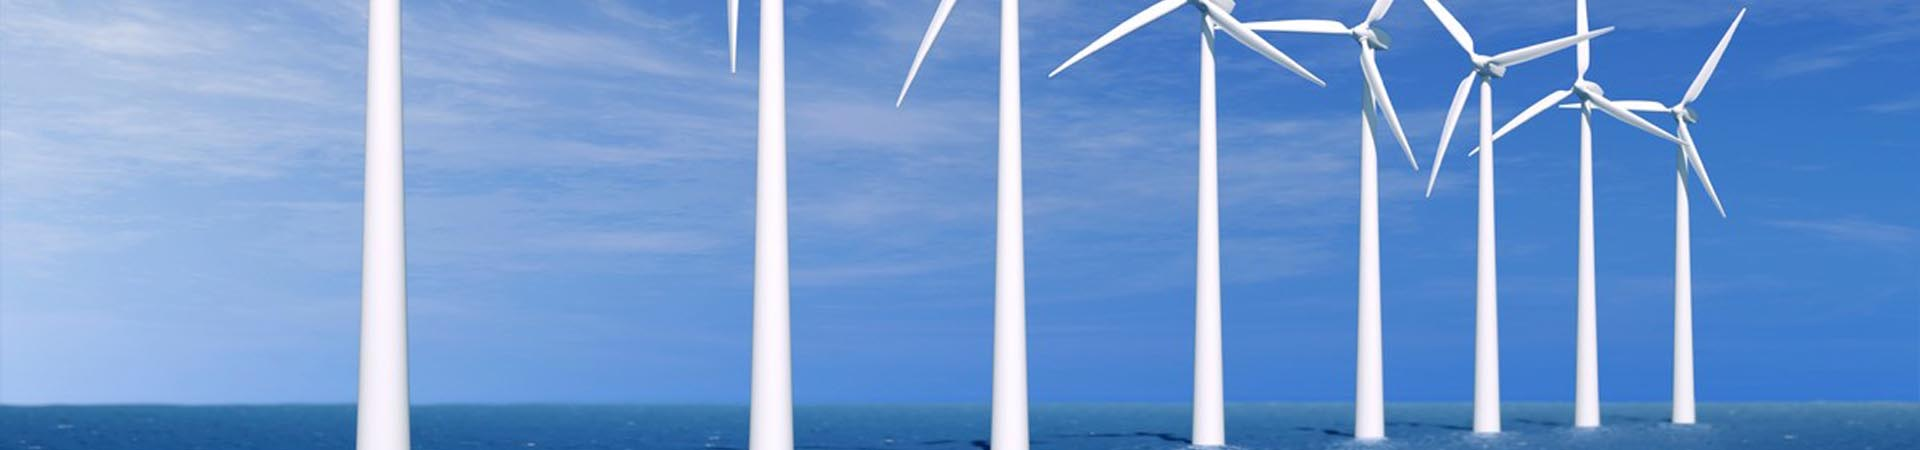 Image showing a row of offshore wind turbines